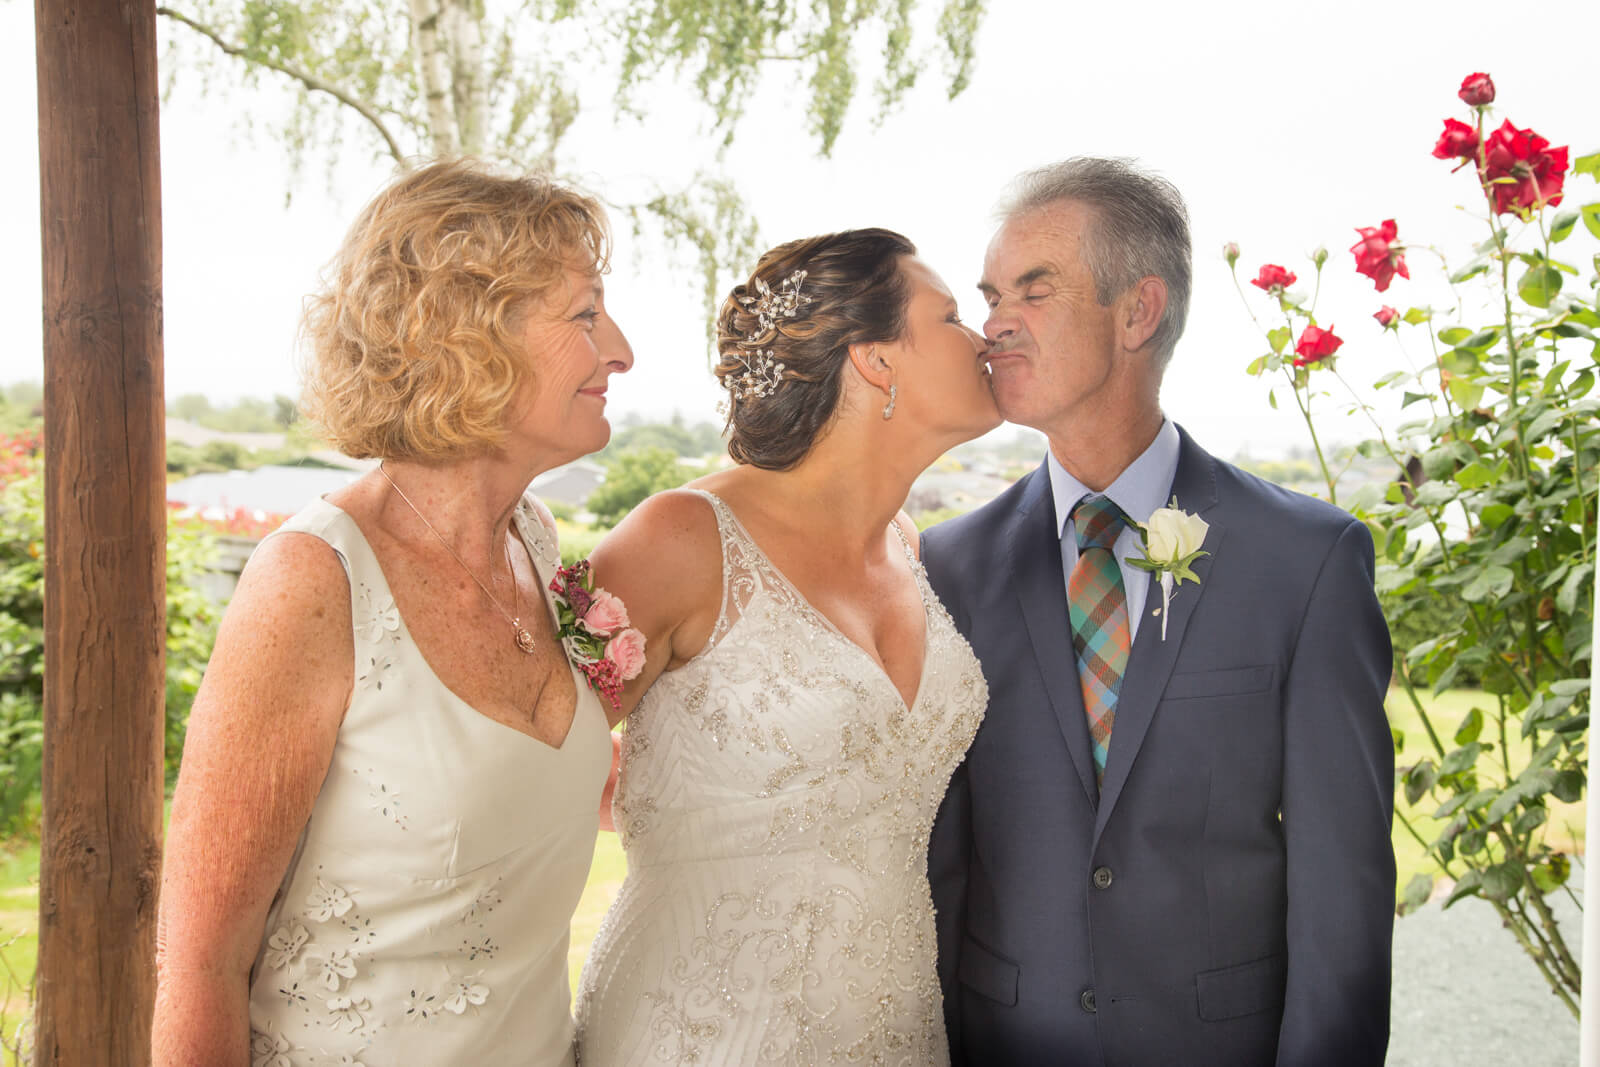 bride and groom kissing during a wedding watched by the bridesmaid